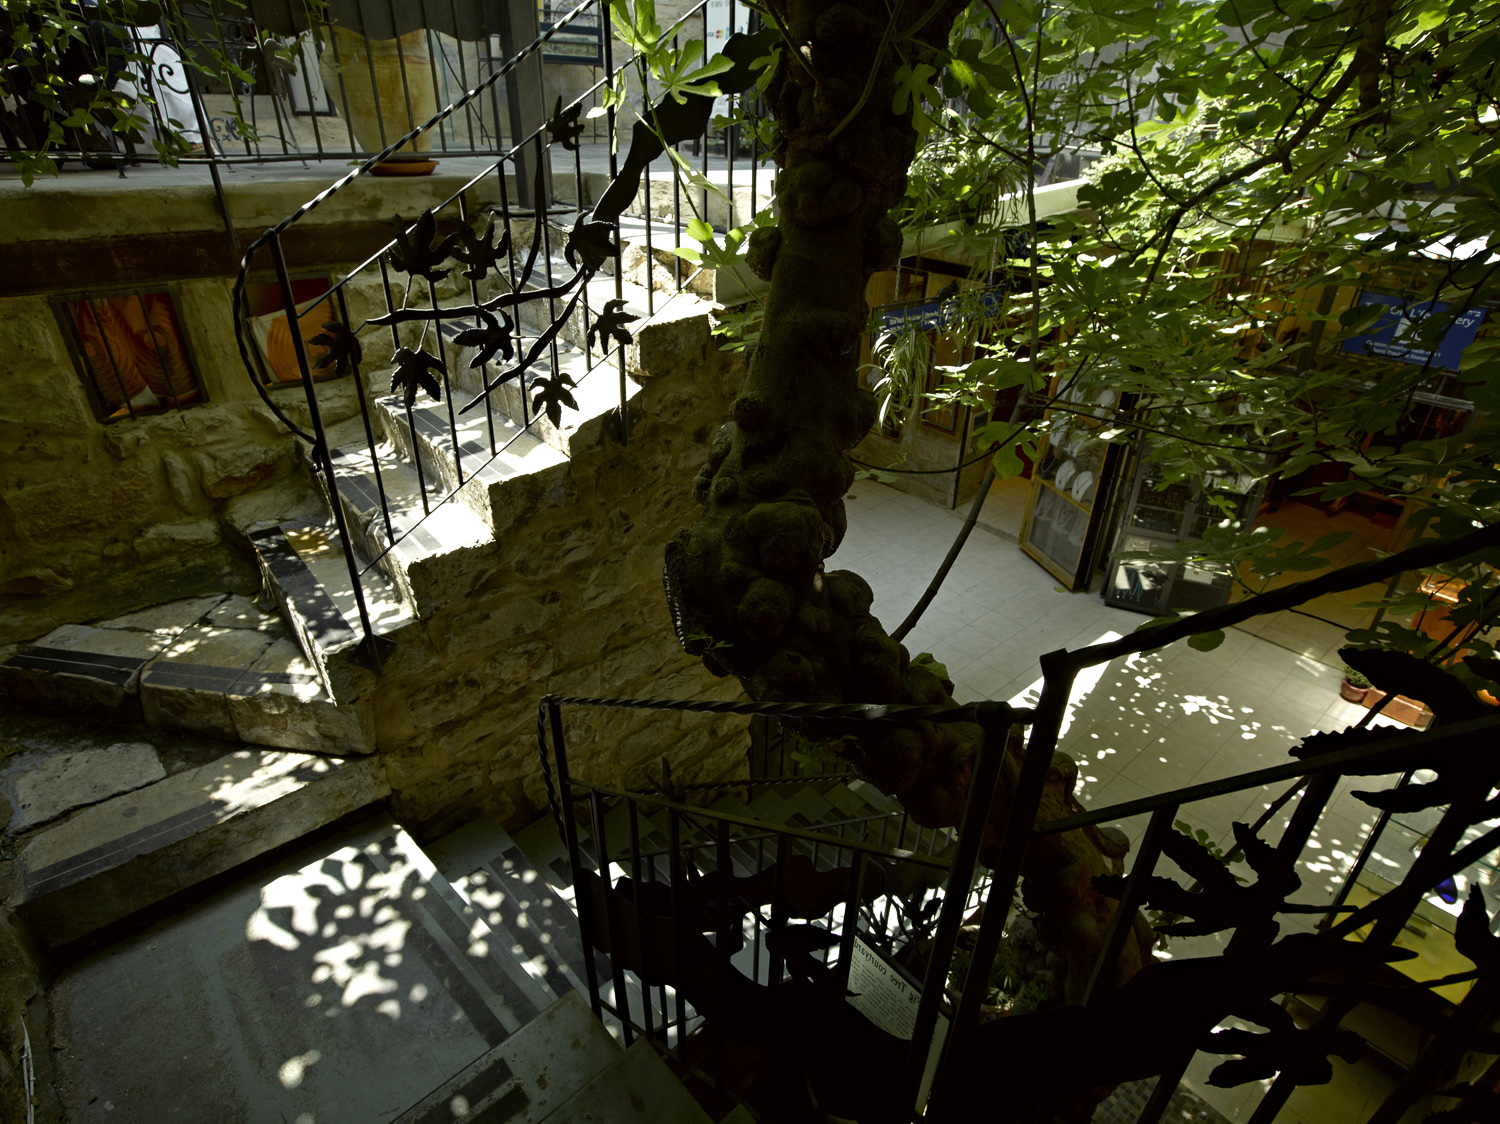 Figtree and stairway - Tzfat, 2012